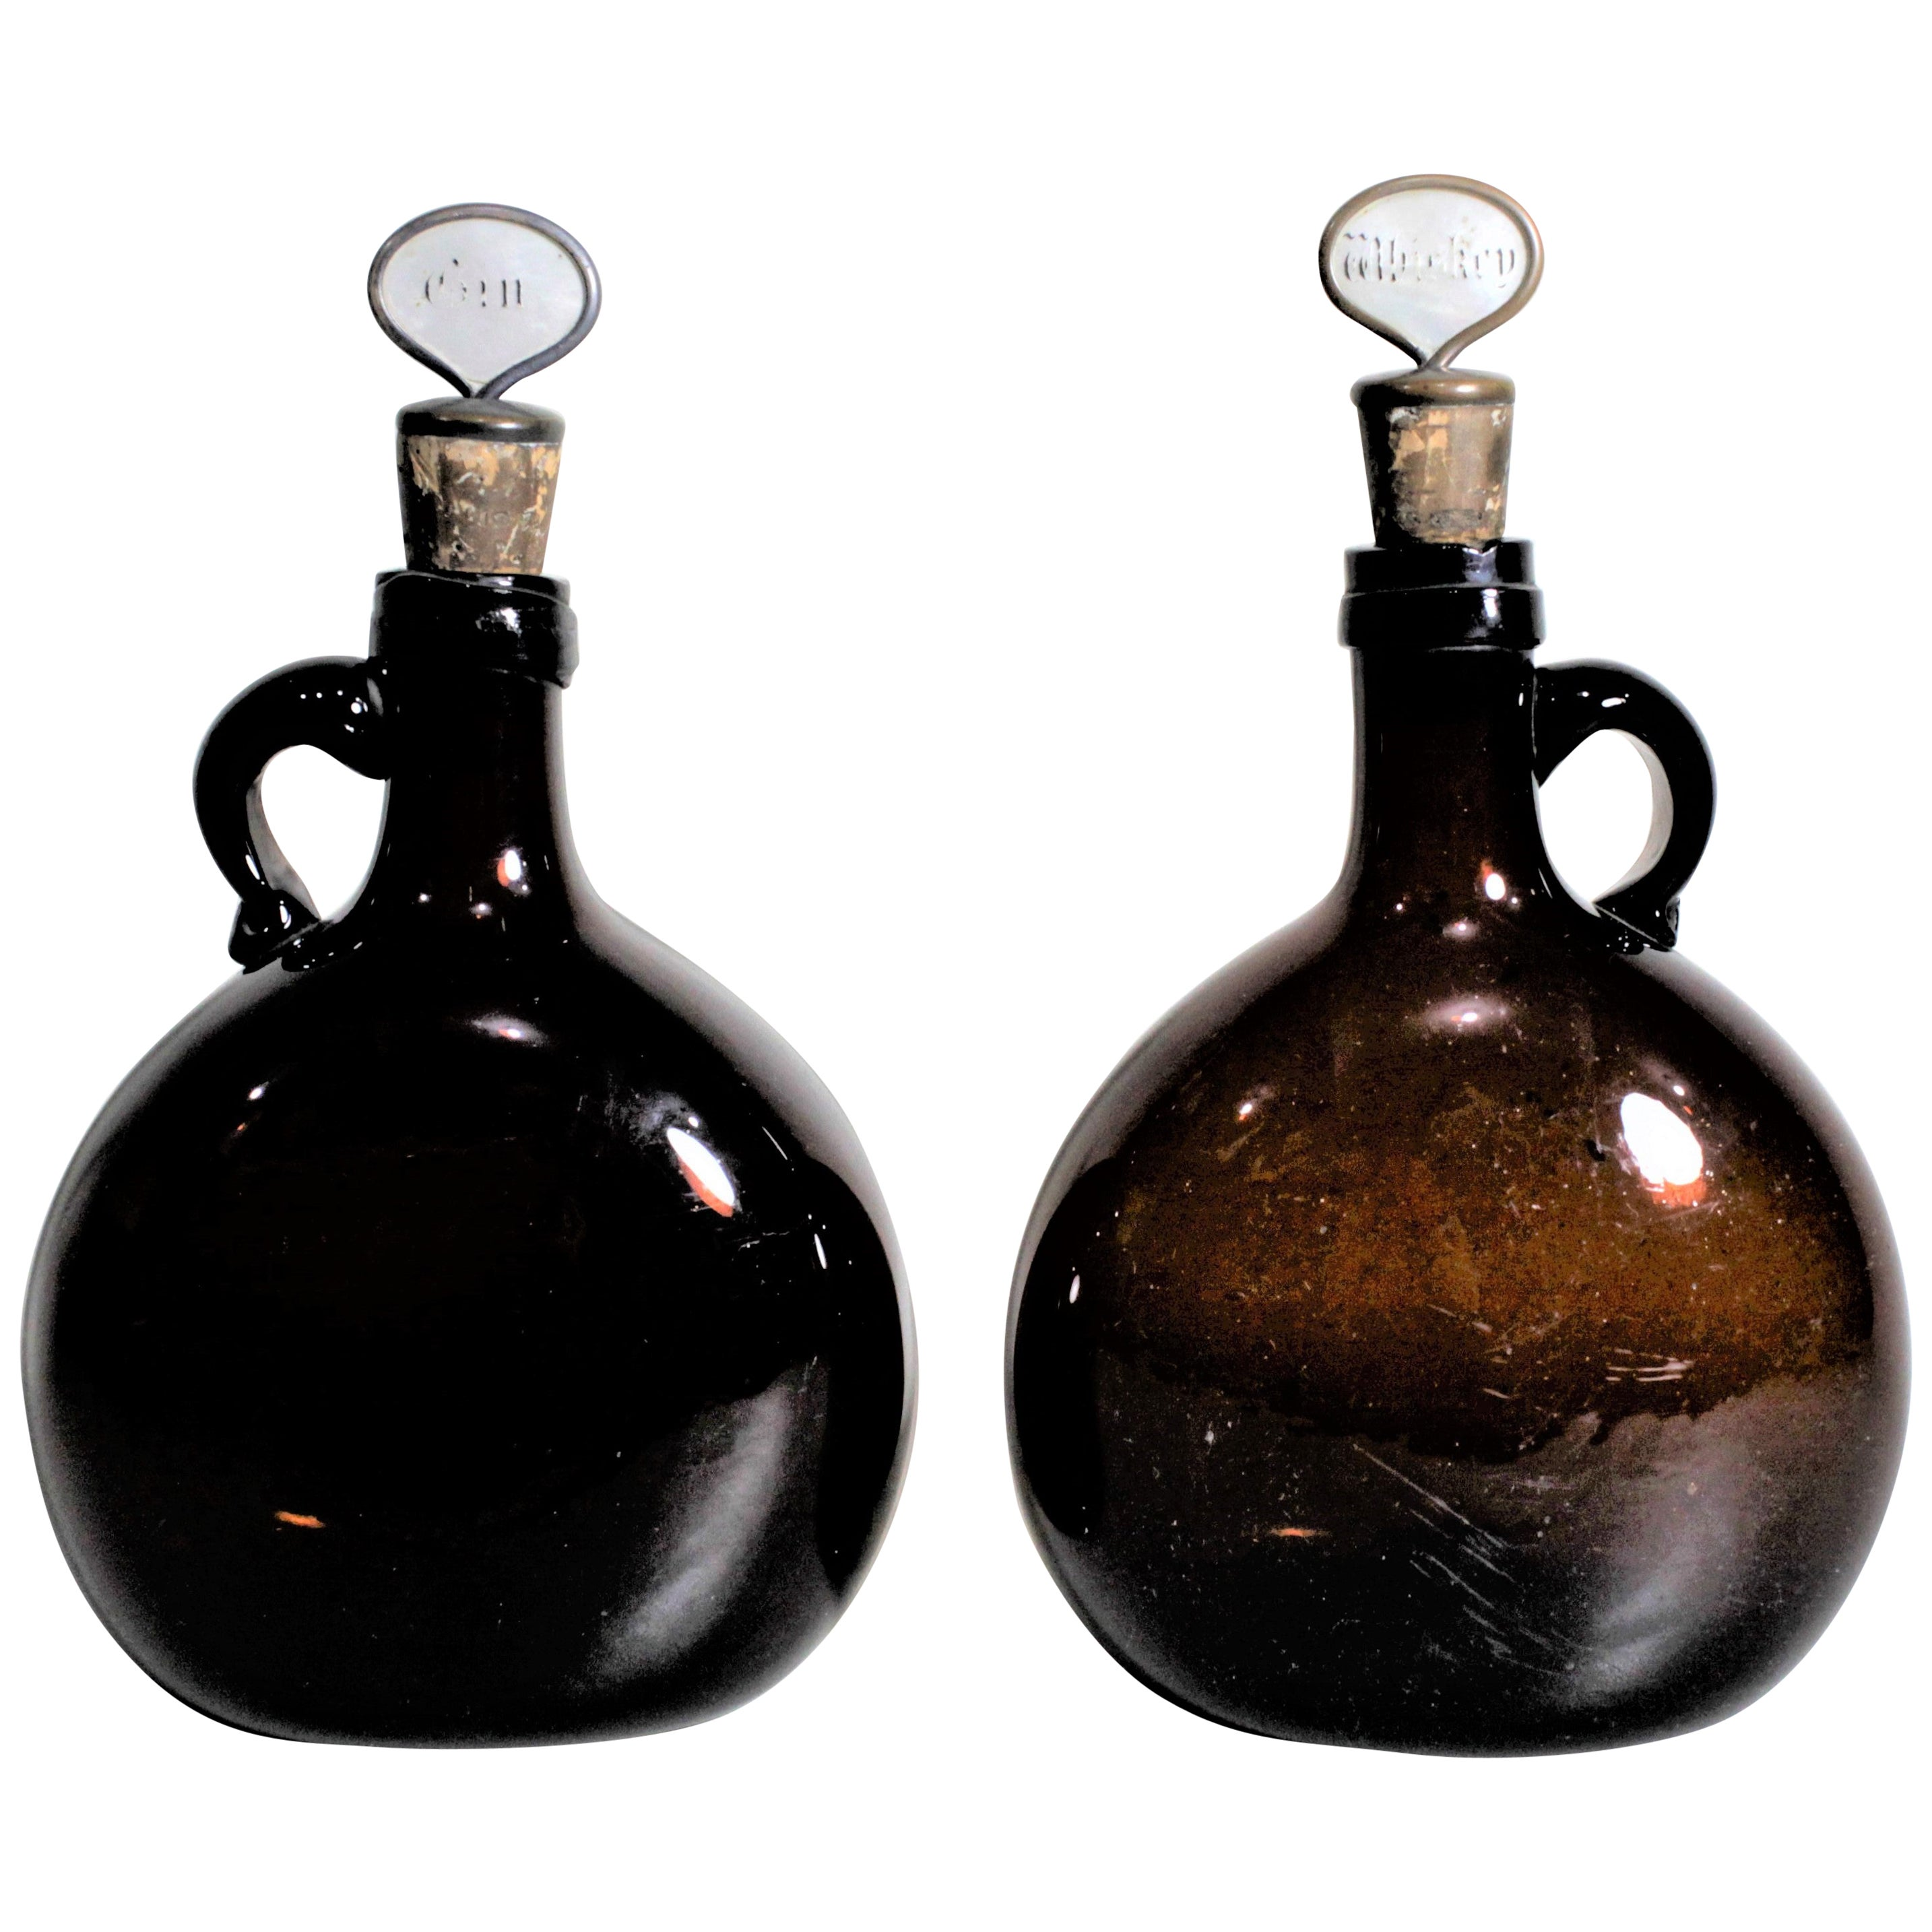 Pair of Antique Amber Glass Liquor Decanters with Mother of Pearl Stoppers